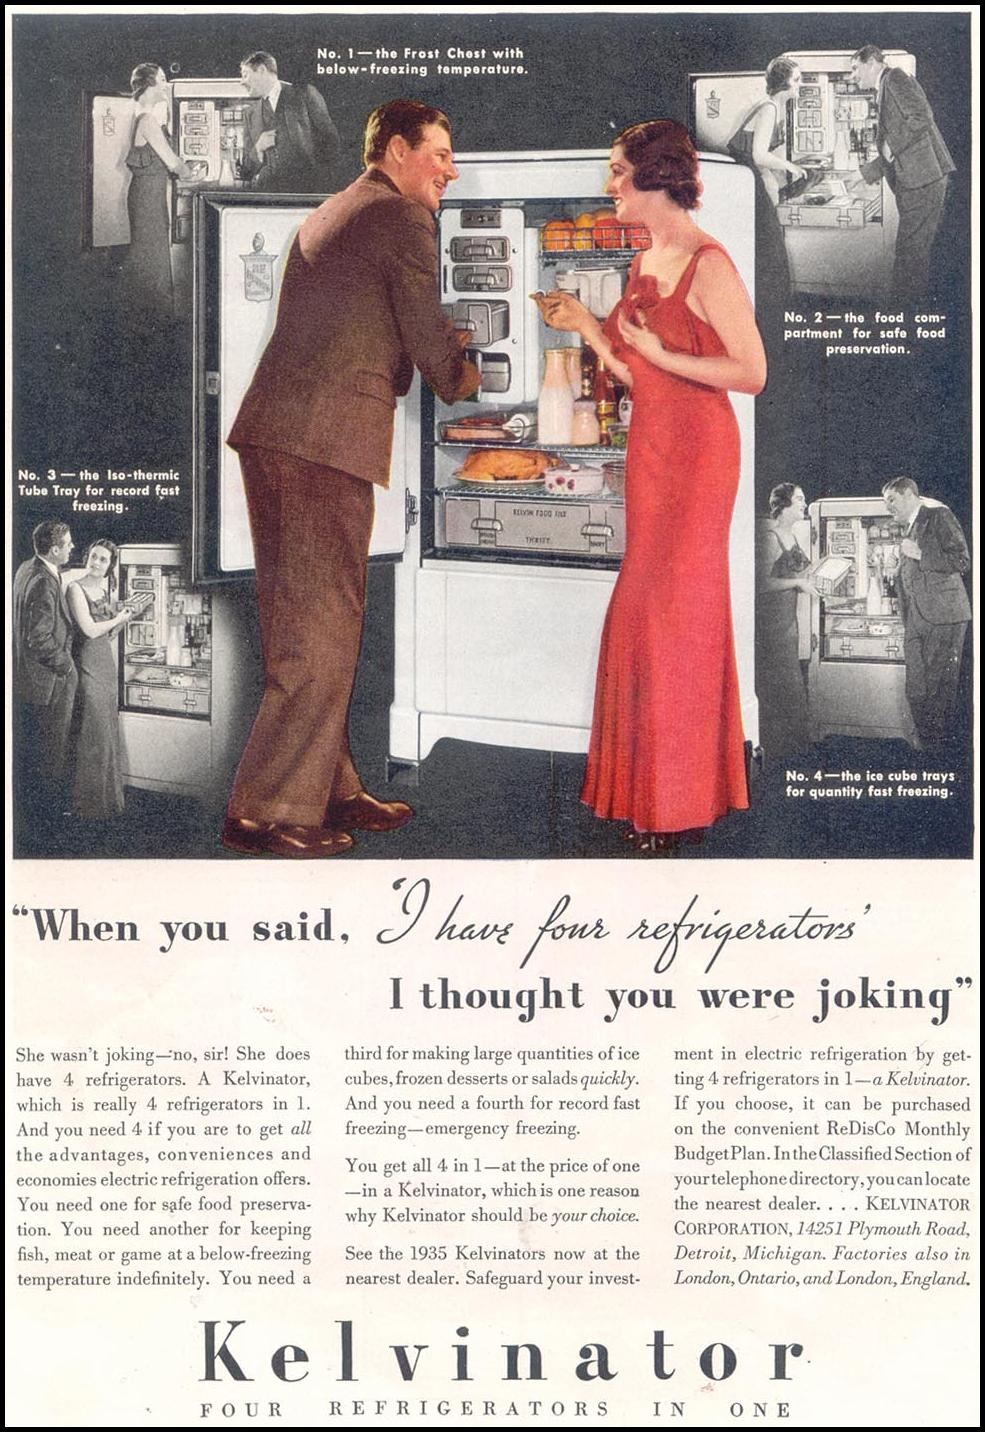 KELVINATOR REFRIGERATORS